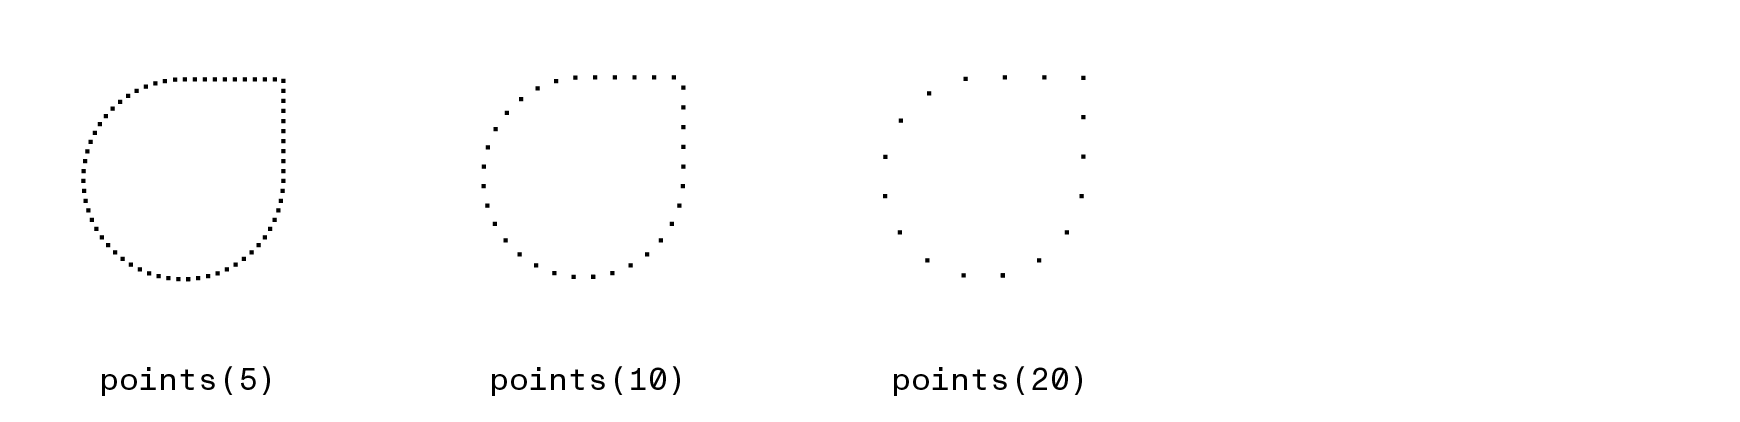 sampling points from a path